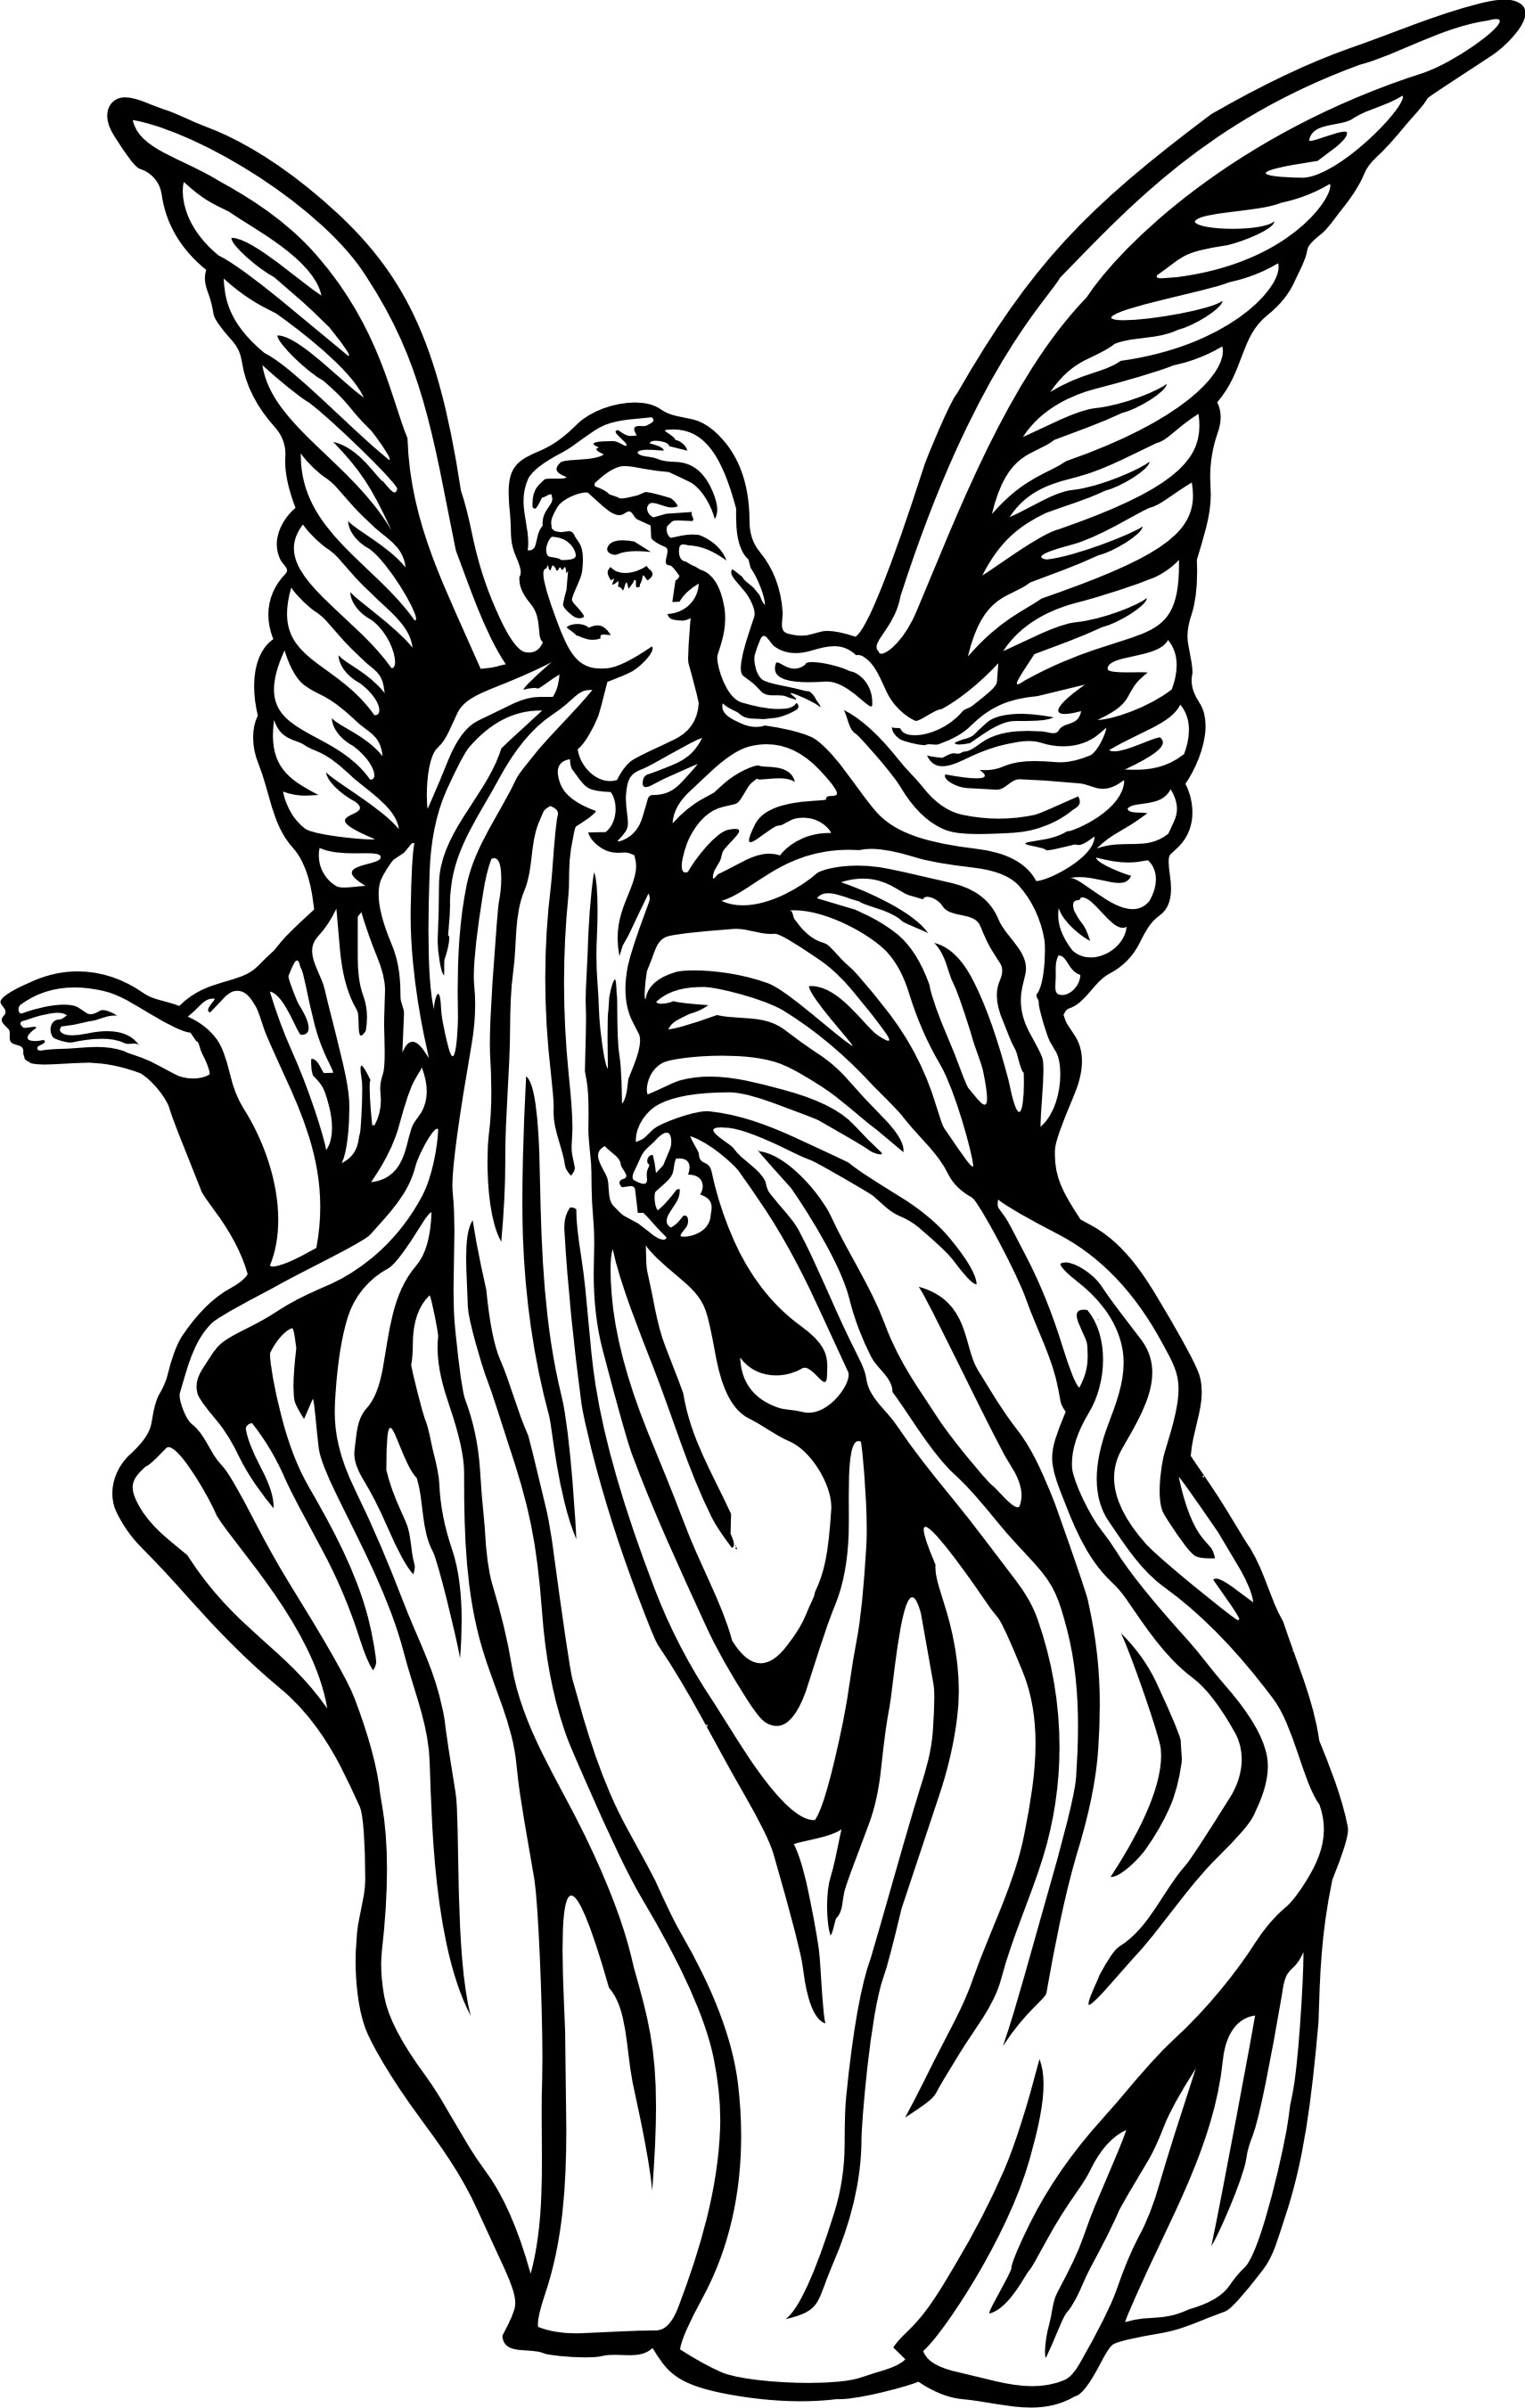 Wings clipart guardian angel Wings pictures Angel wings Cartoon